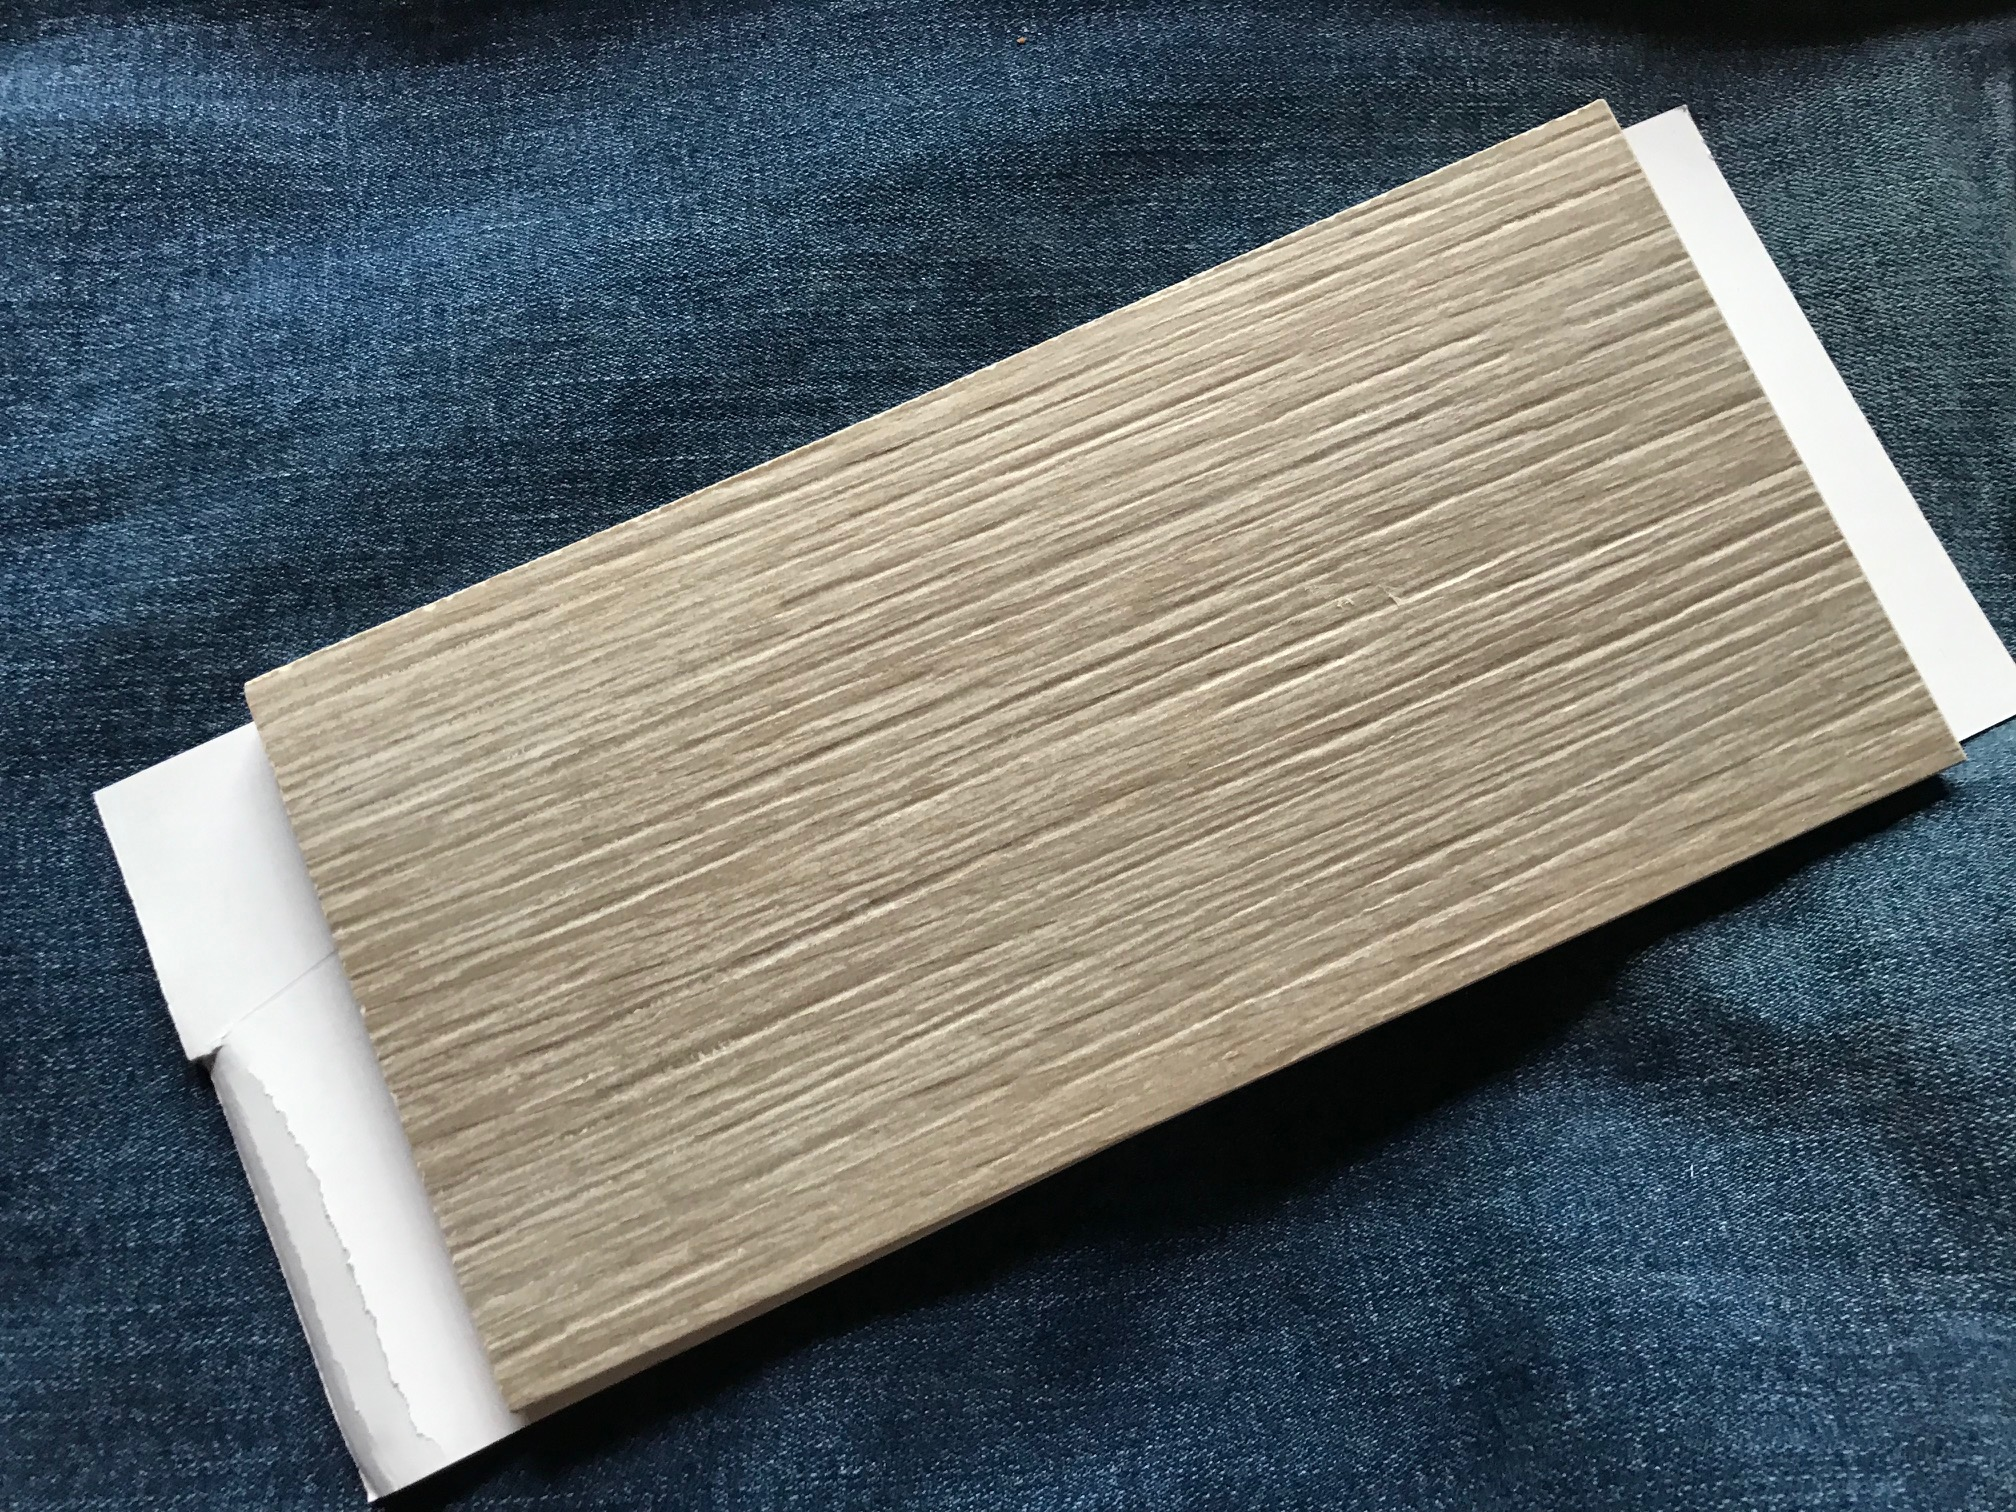 Montana Chestnut Natural Wood Look tile from tilebar: ND (negative) for Pb, As, Hg, Cd & Sb.